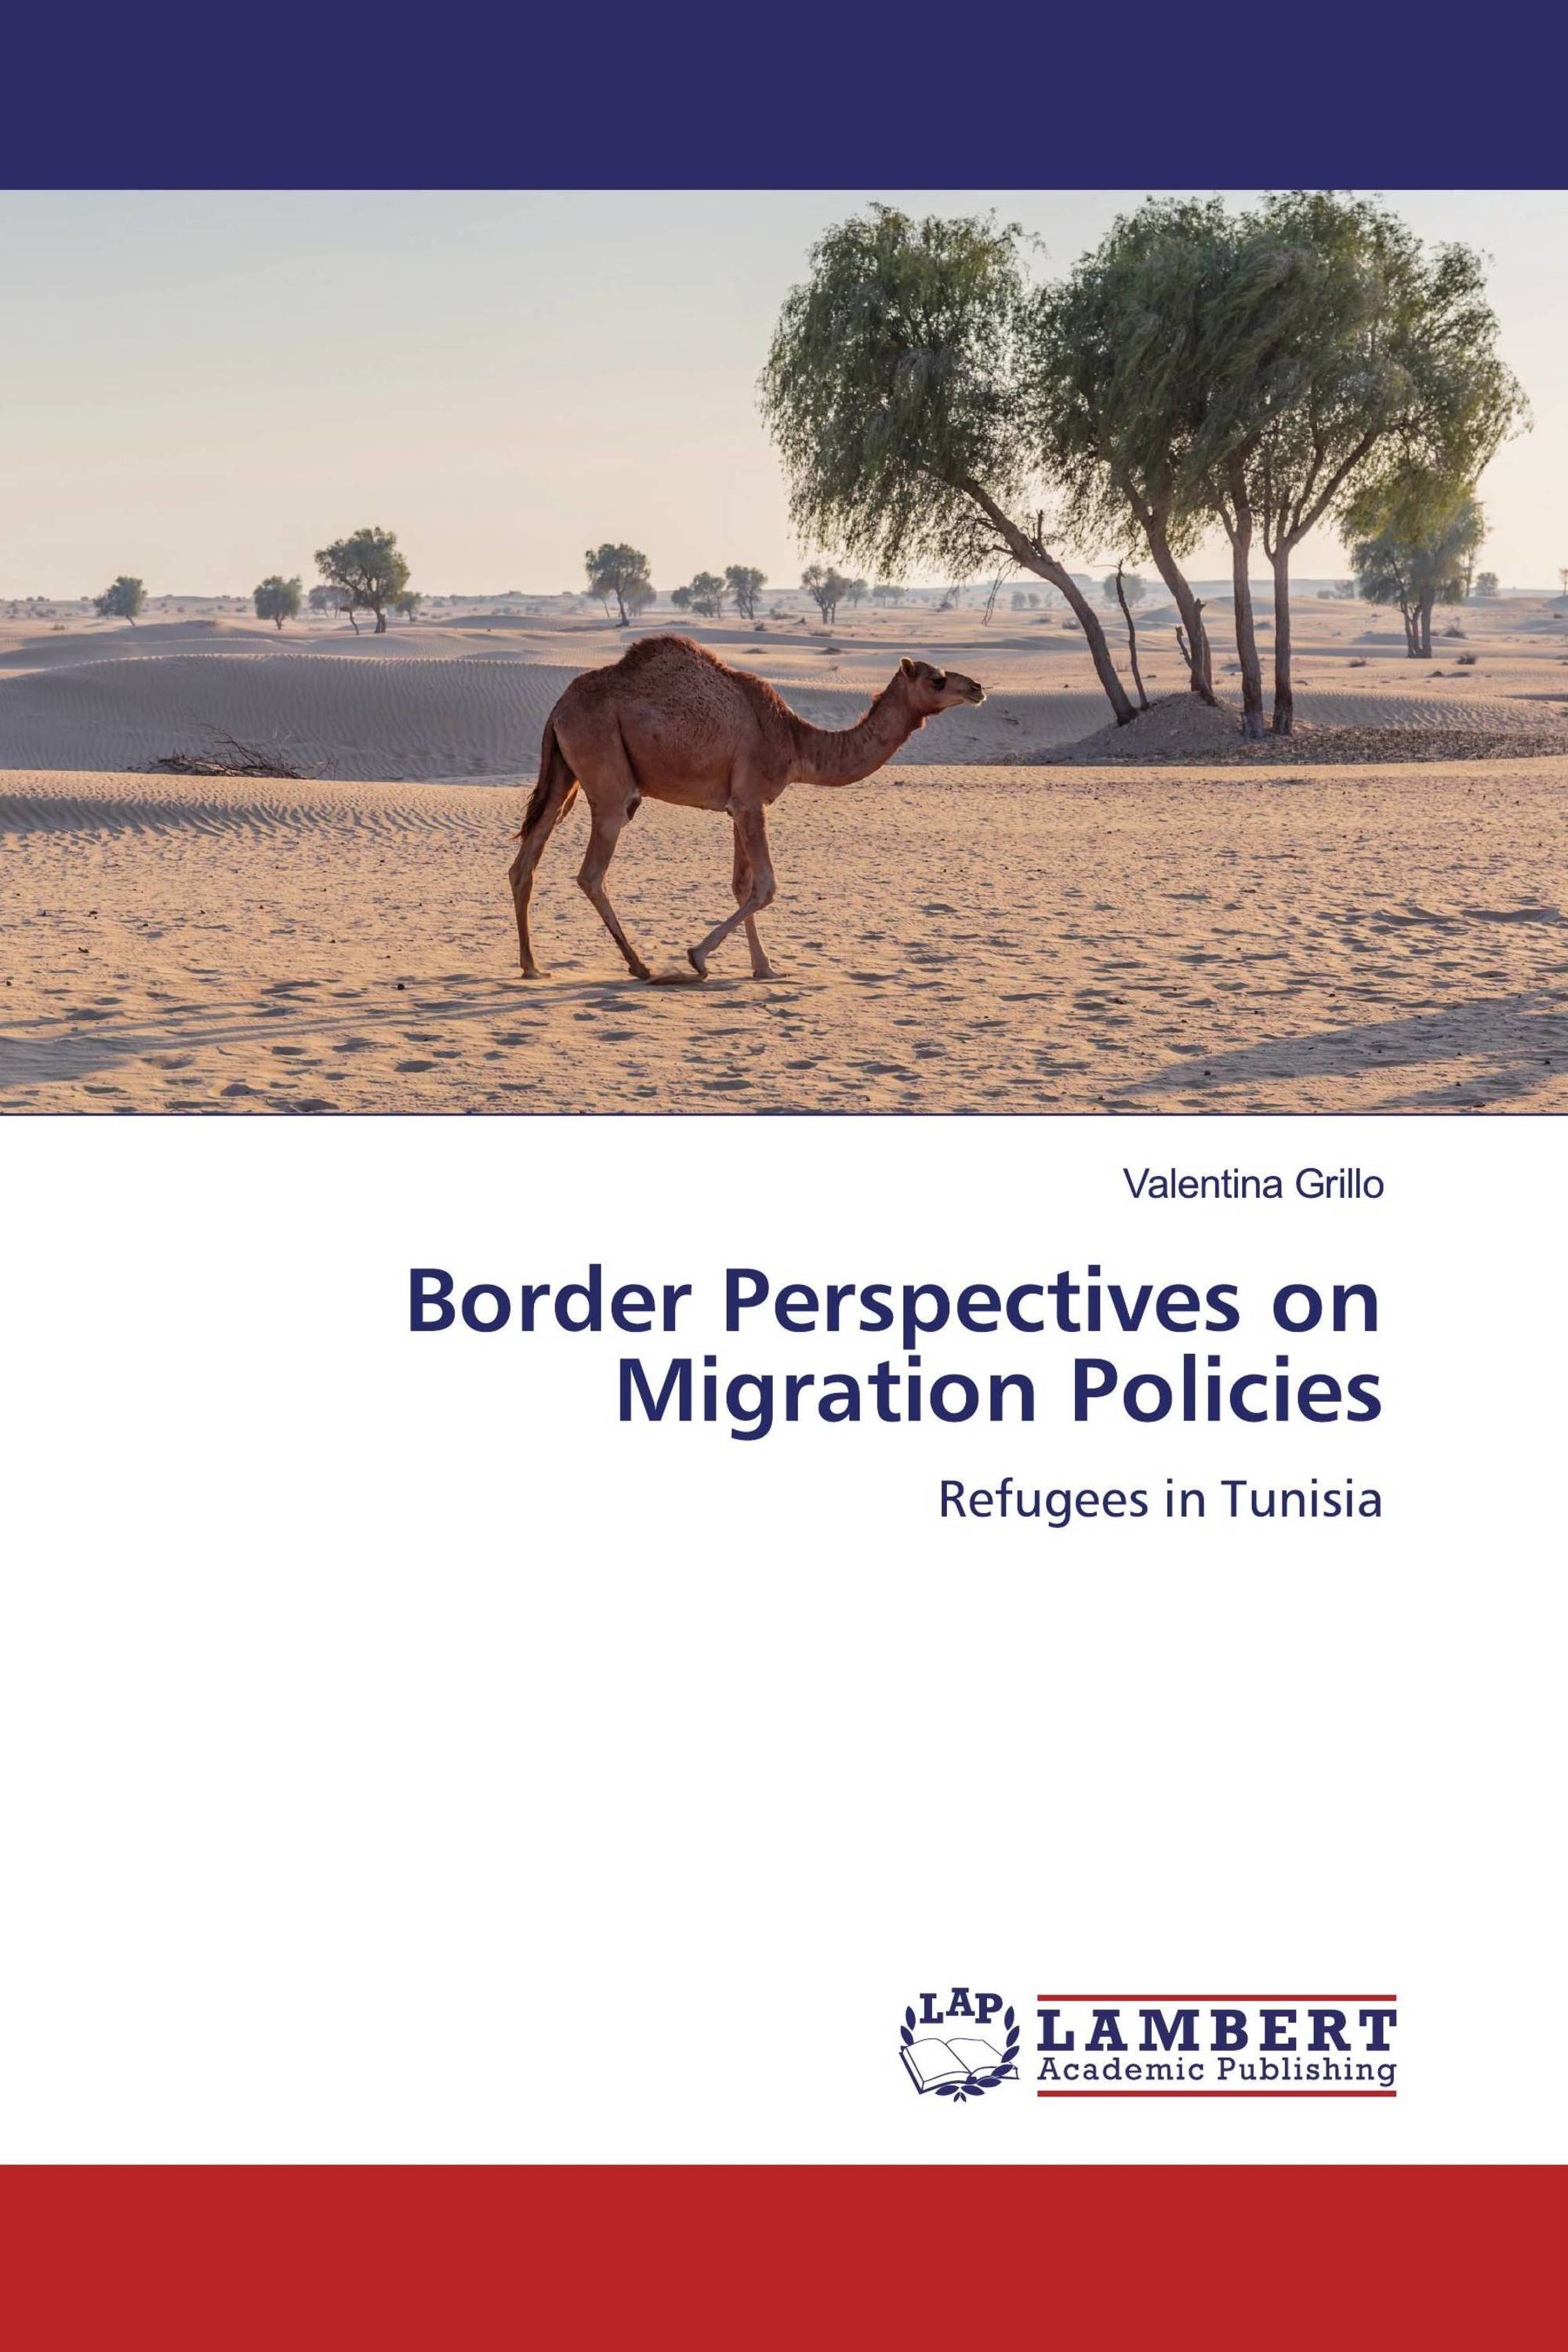 Border Perspectives on Migration Policies